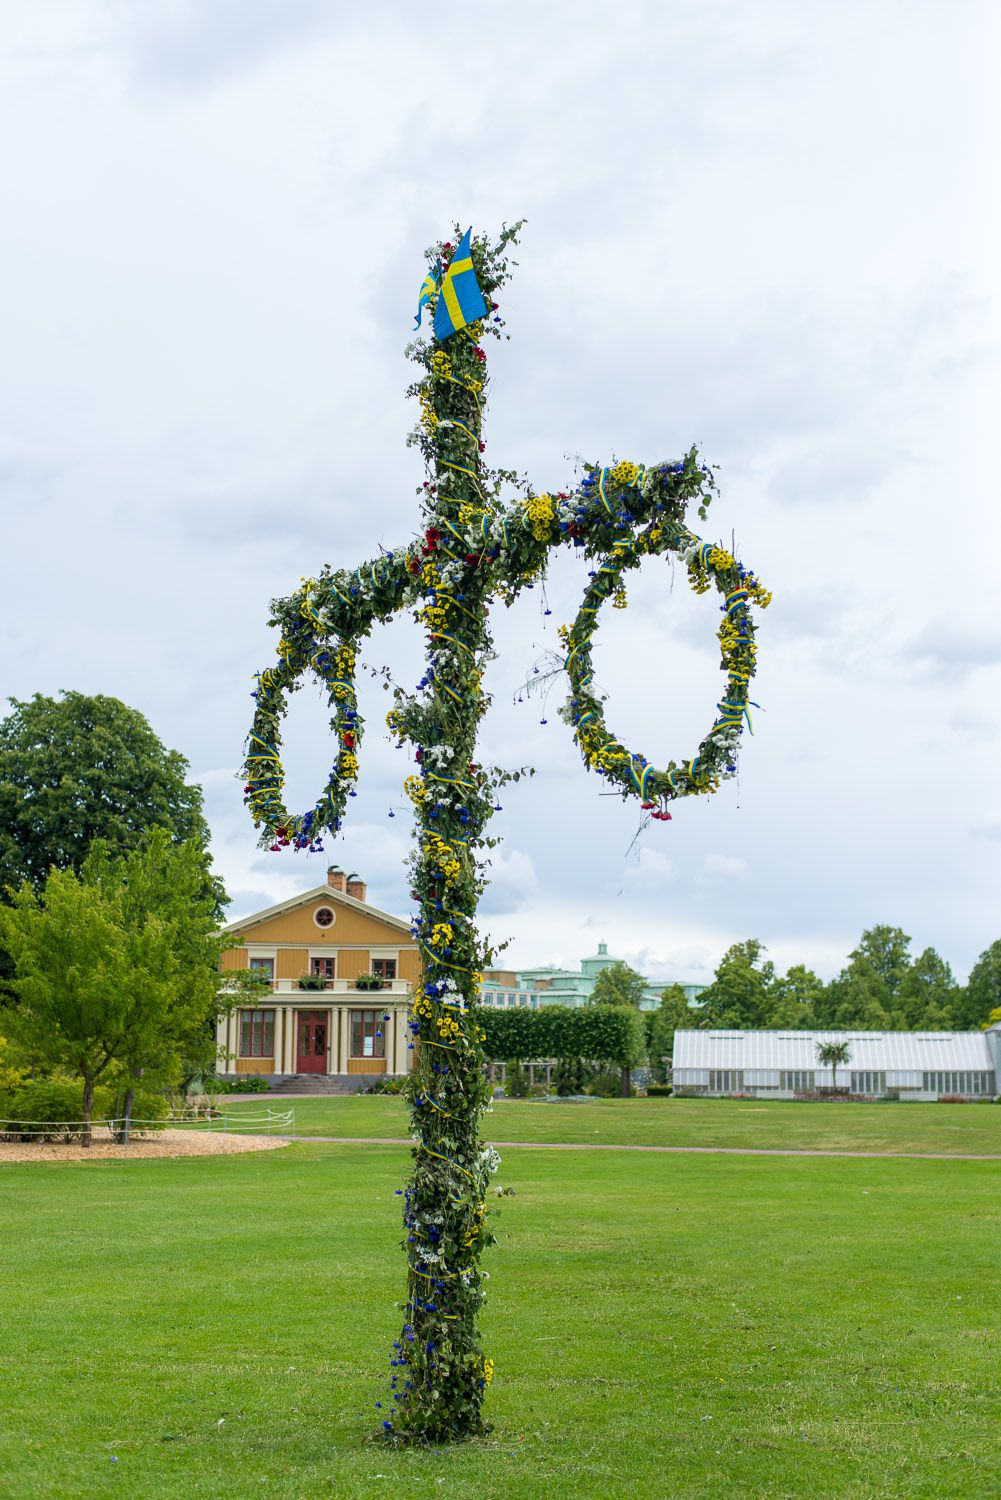 The Midsommar maypole at The Garden Society of Gothenburg, one of the best-preserved 19th century parks in Europe.